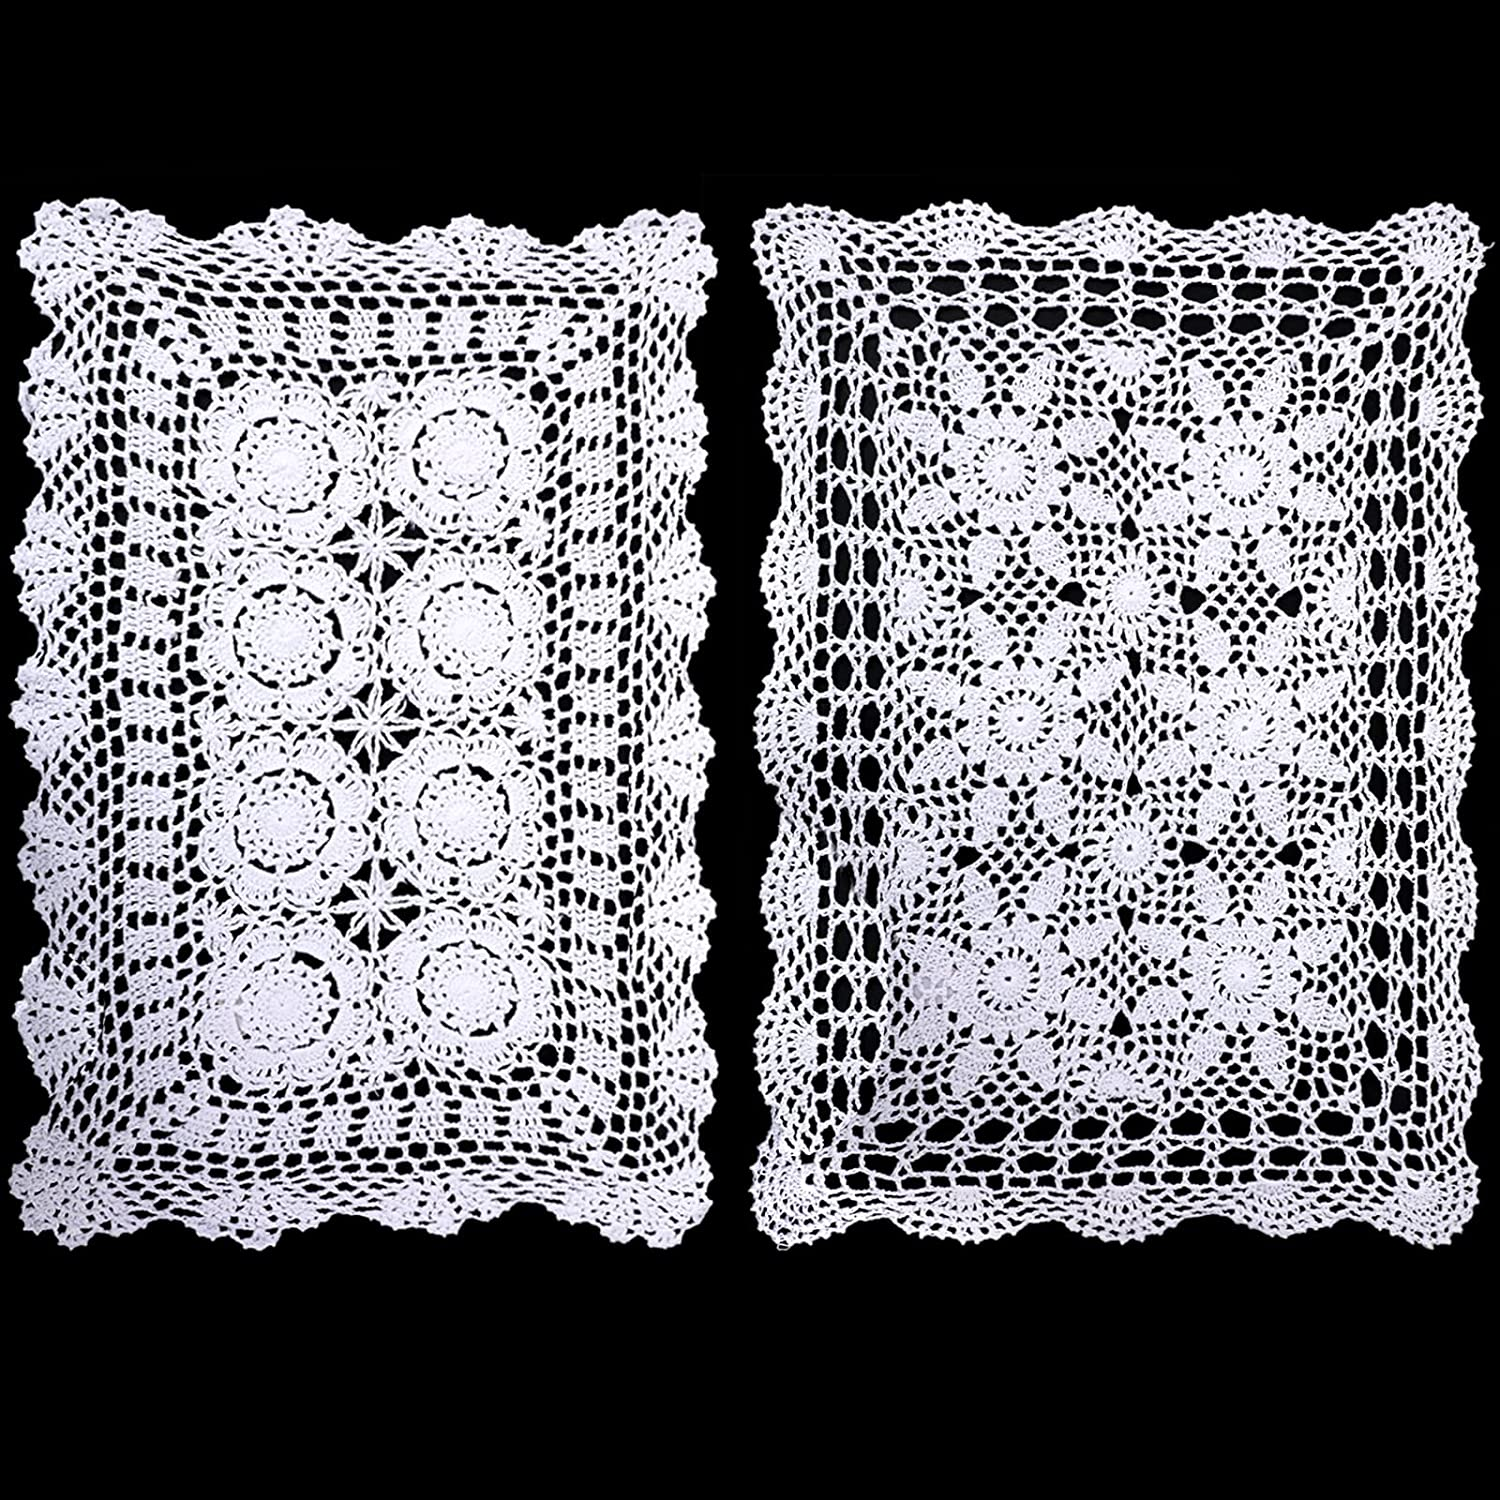 WILLBOND 2 Pieces Handmade Crochet Lace Table Runner Rectangular Lace Doilies Doily Floral Tablecloth Crochet Table Cover Dining Table Placemats Bedside Dresser Table Decor, 15 x 23 Inch, White